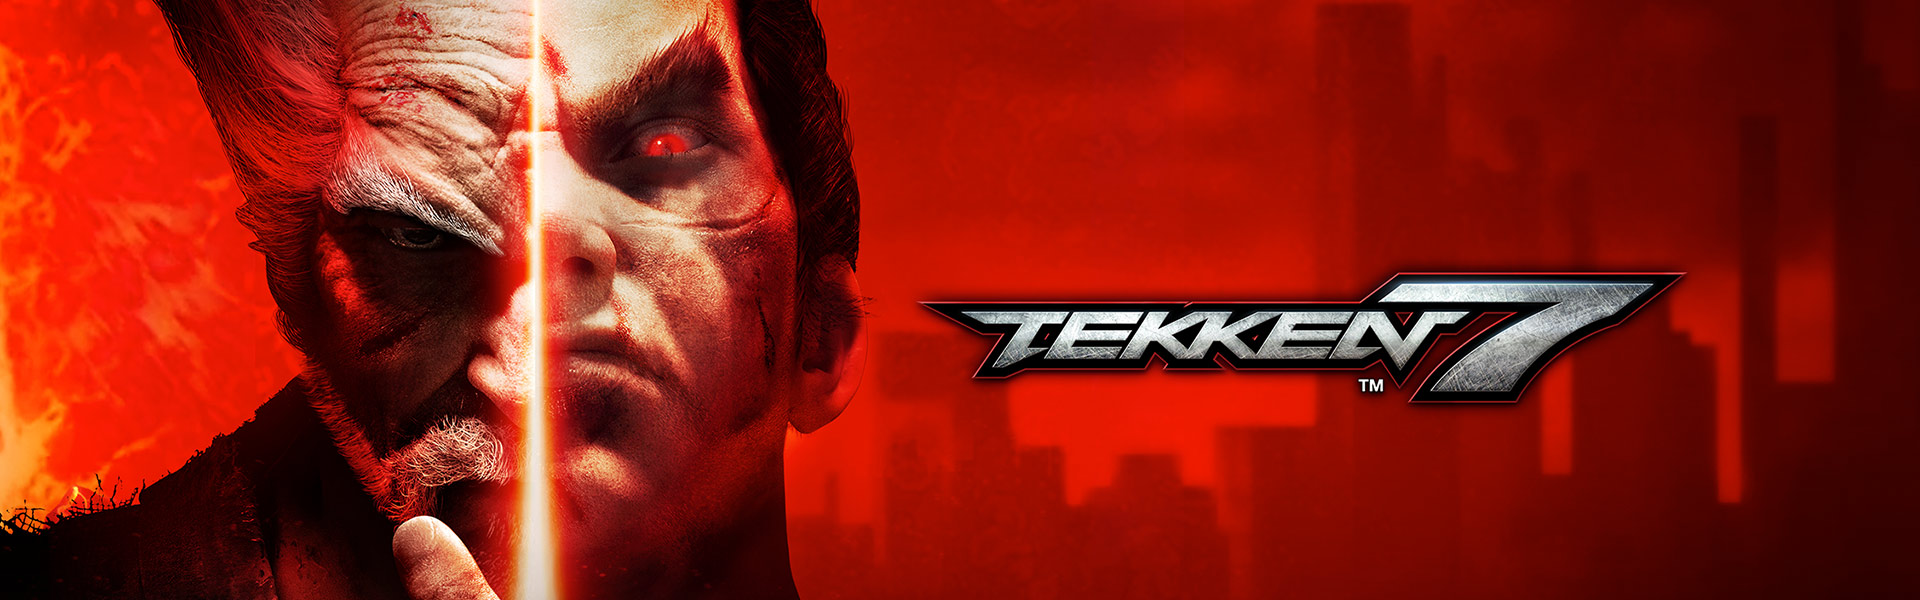 Tekken 7. Two halves of characters faces stuck together